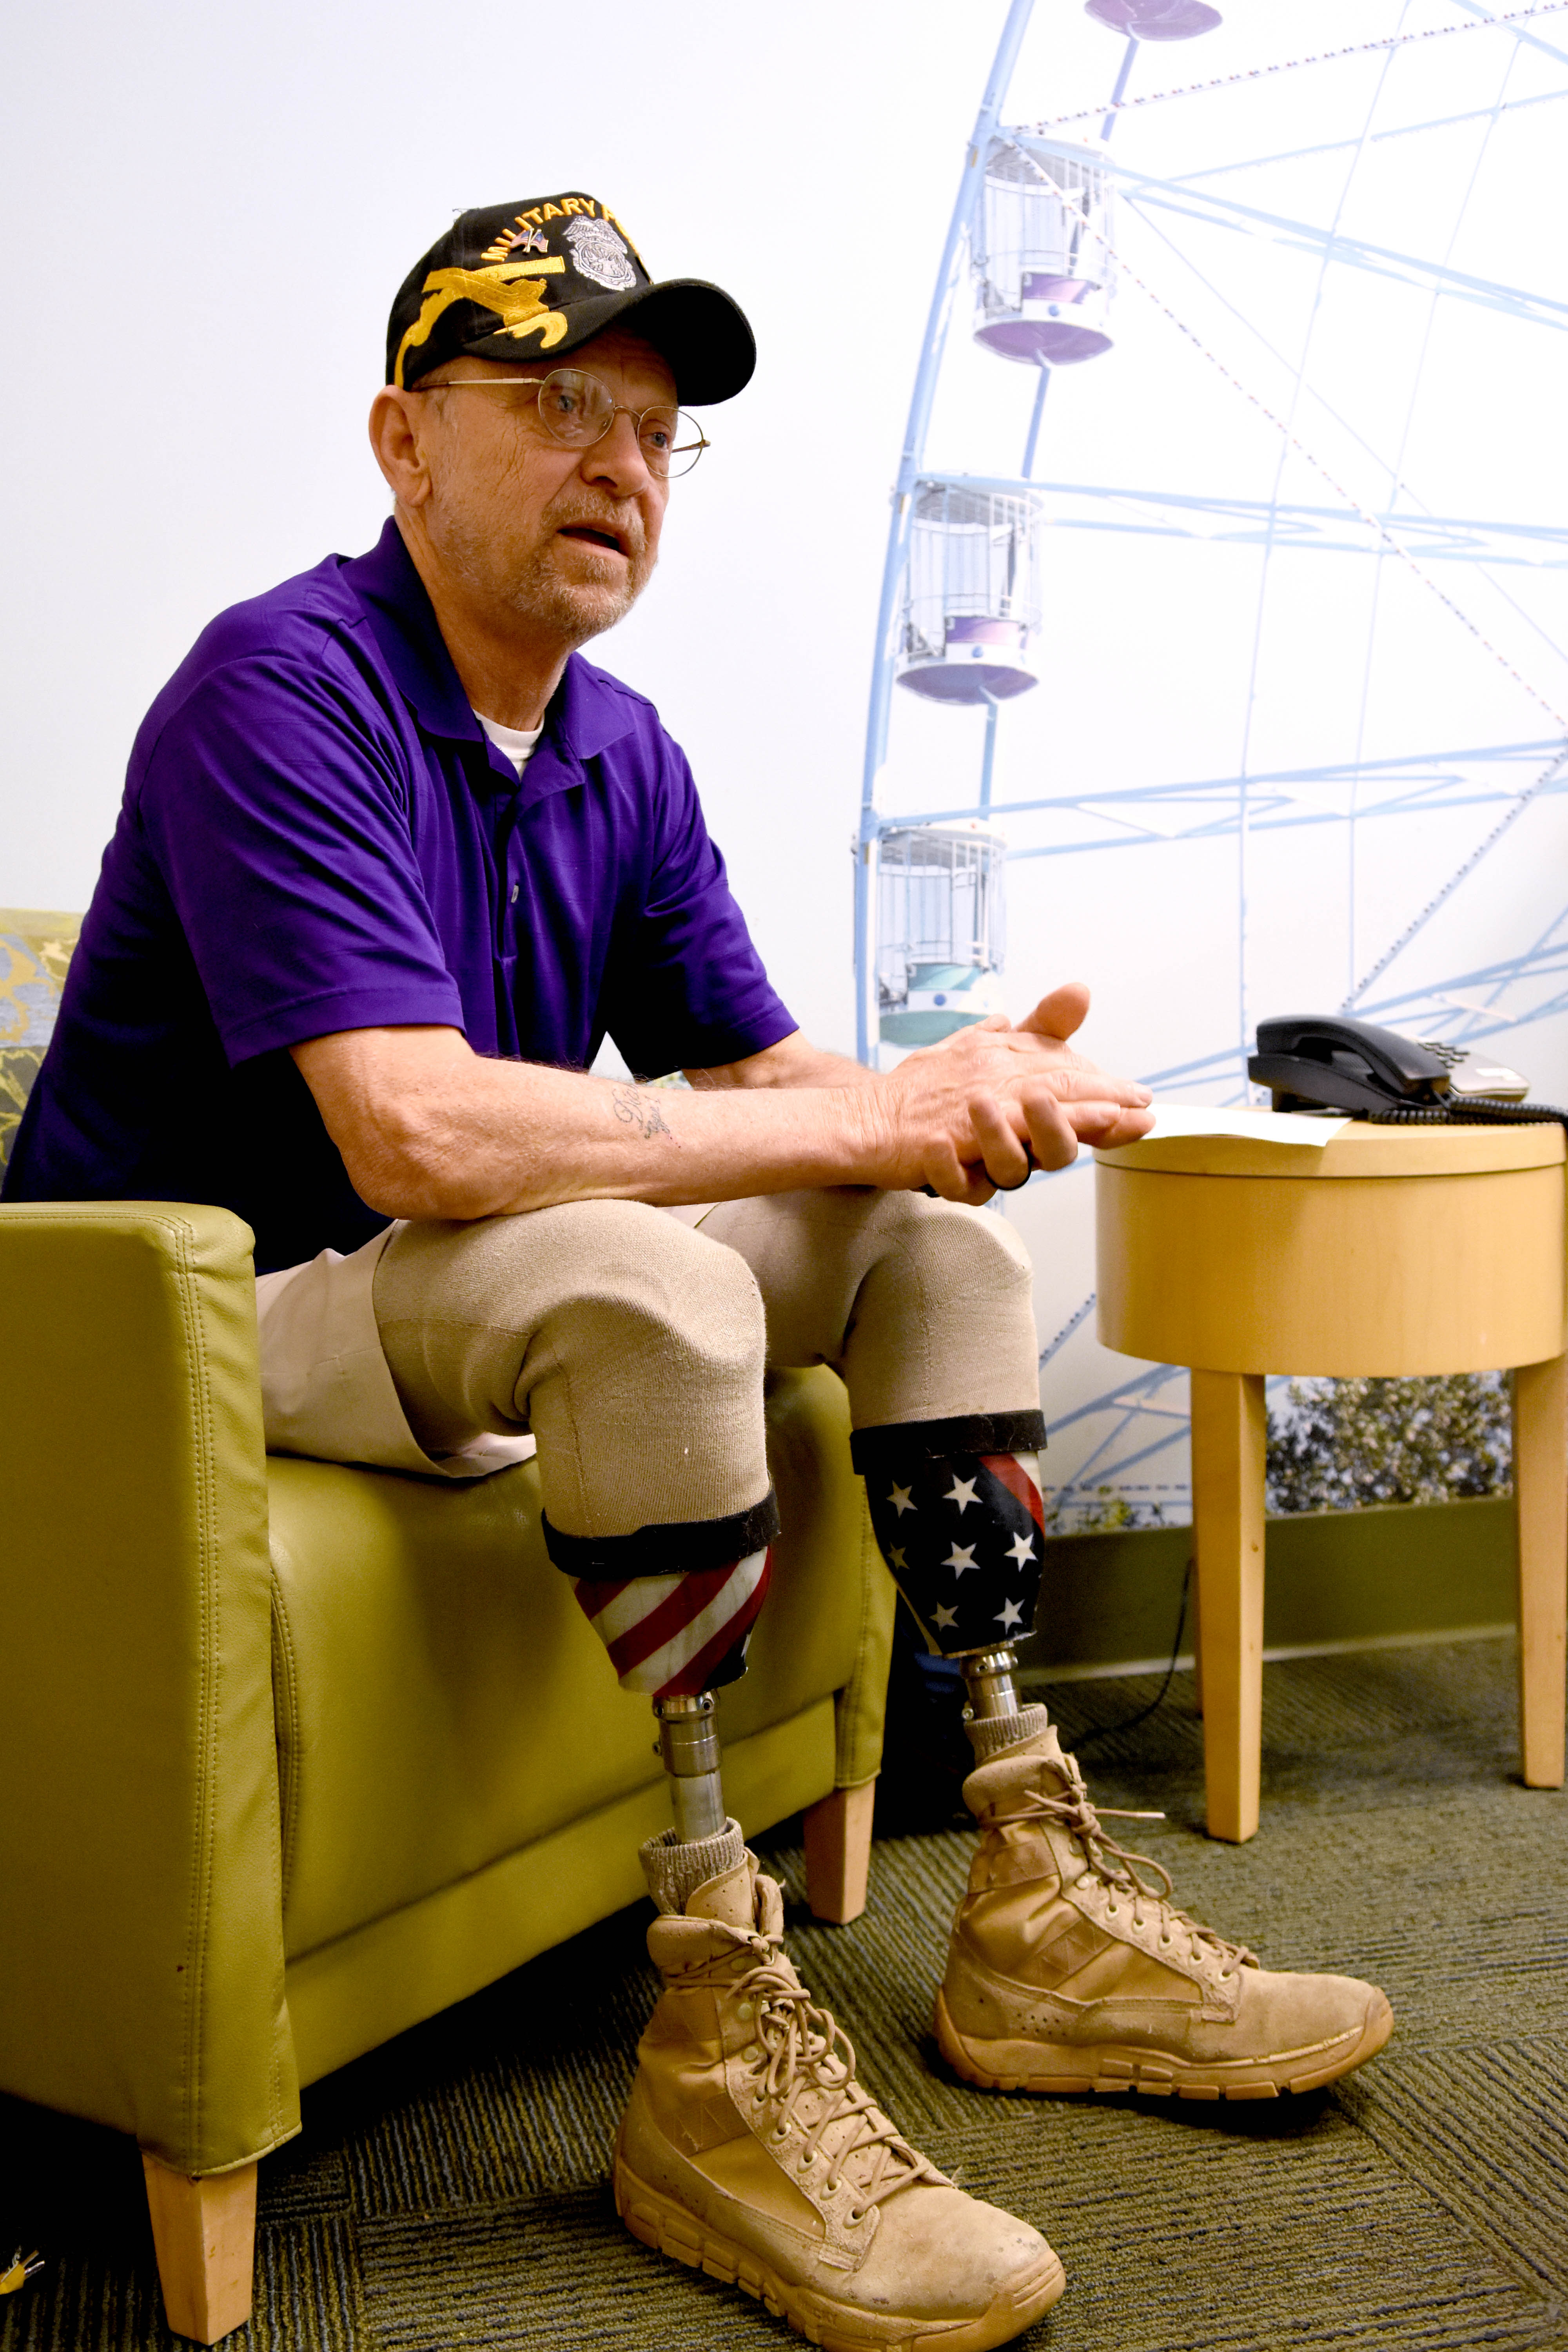 va north texas brings mobility  freedom to amputee